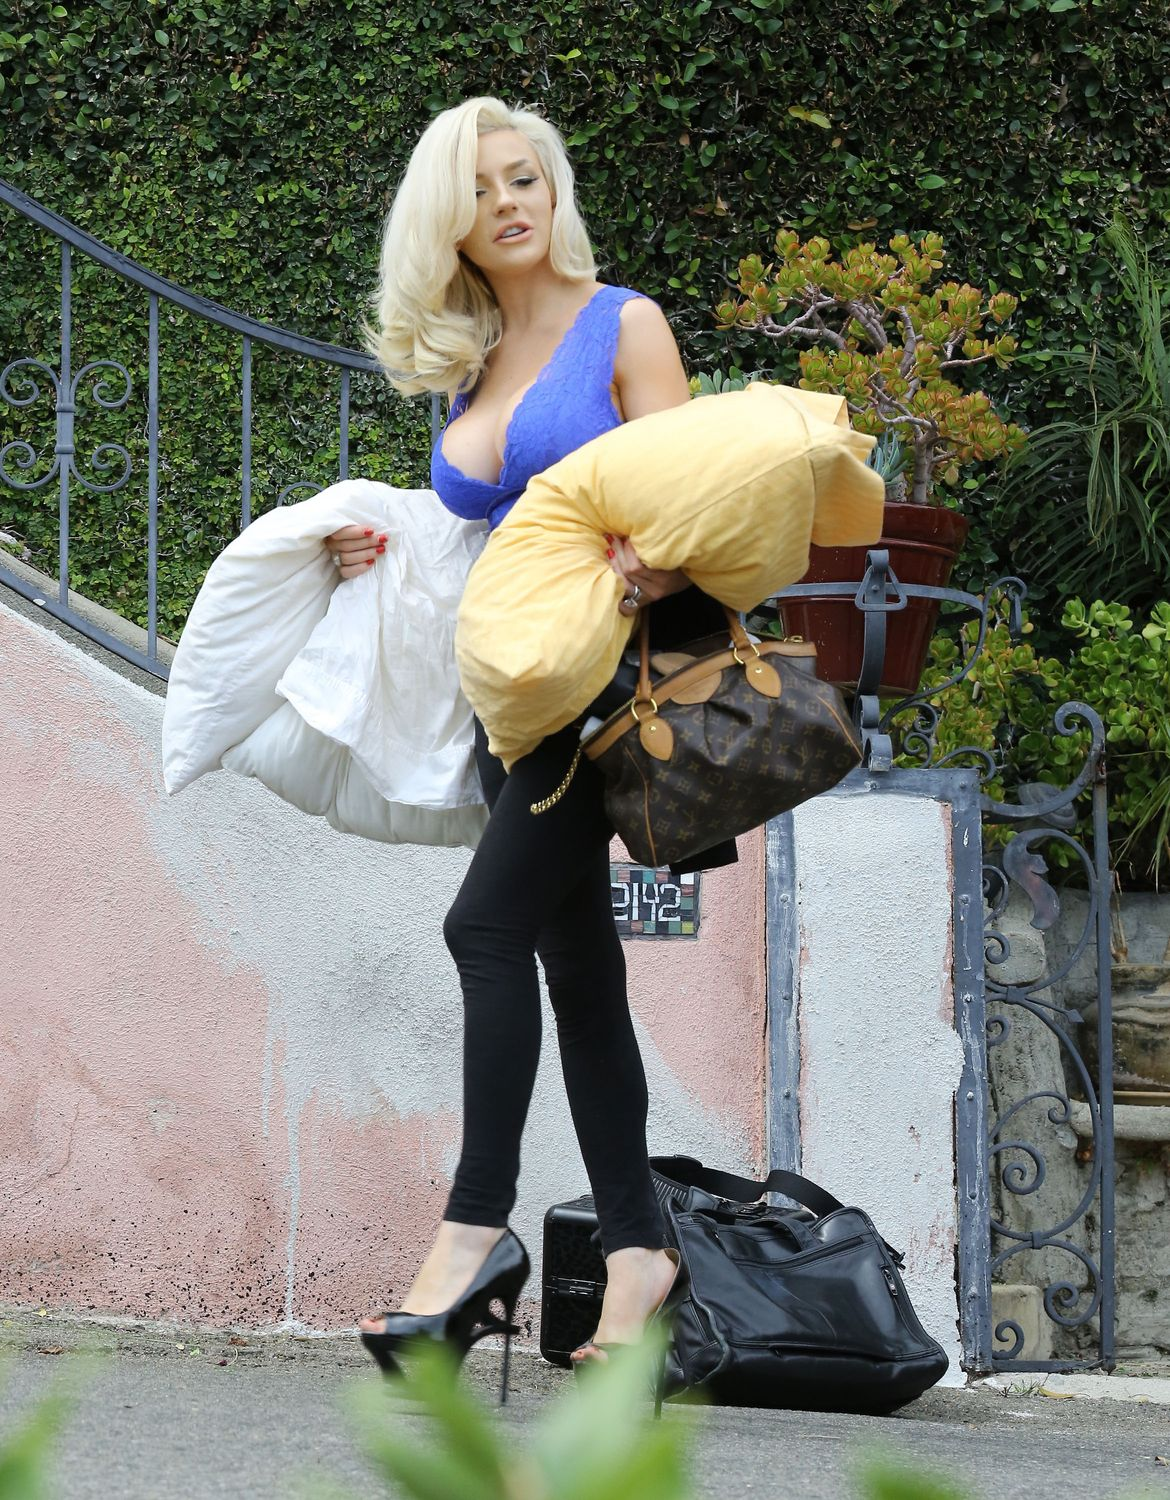 Boobs Of Courtney Stodden